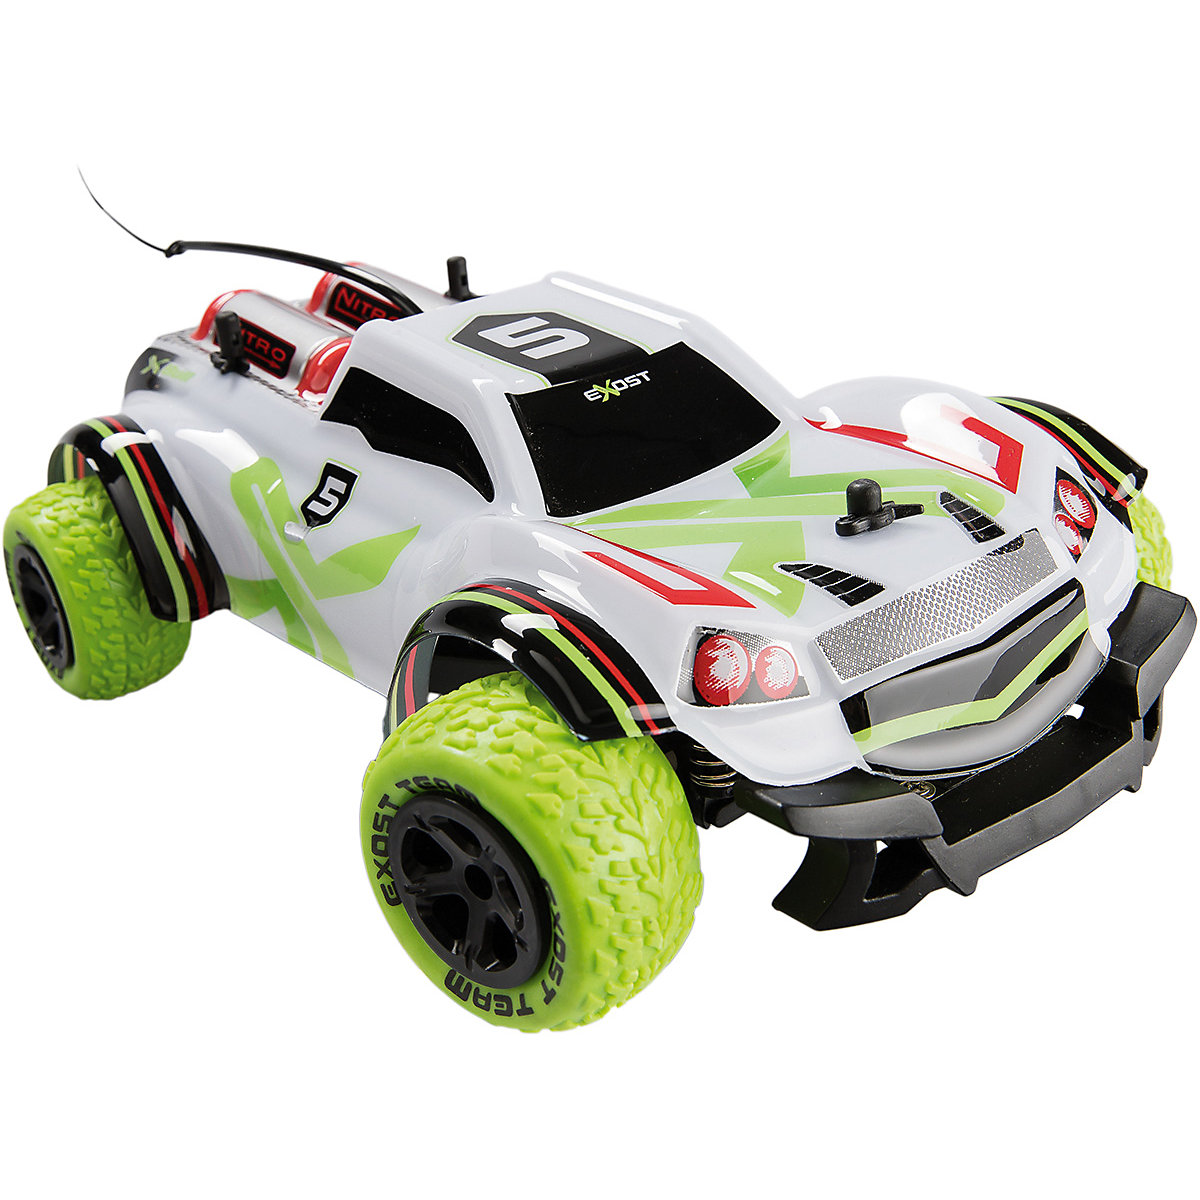 Silverlit RC Cars 10077739 Remote Control Toys radio-controlled toy games children Kids car 4022d car radio music player with rear view camera support bluetooth mp5 mp4 mp3 fm transmitter car video with remote control